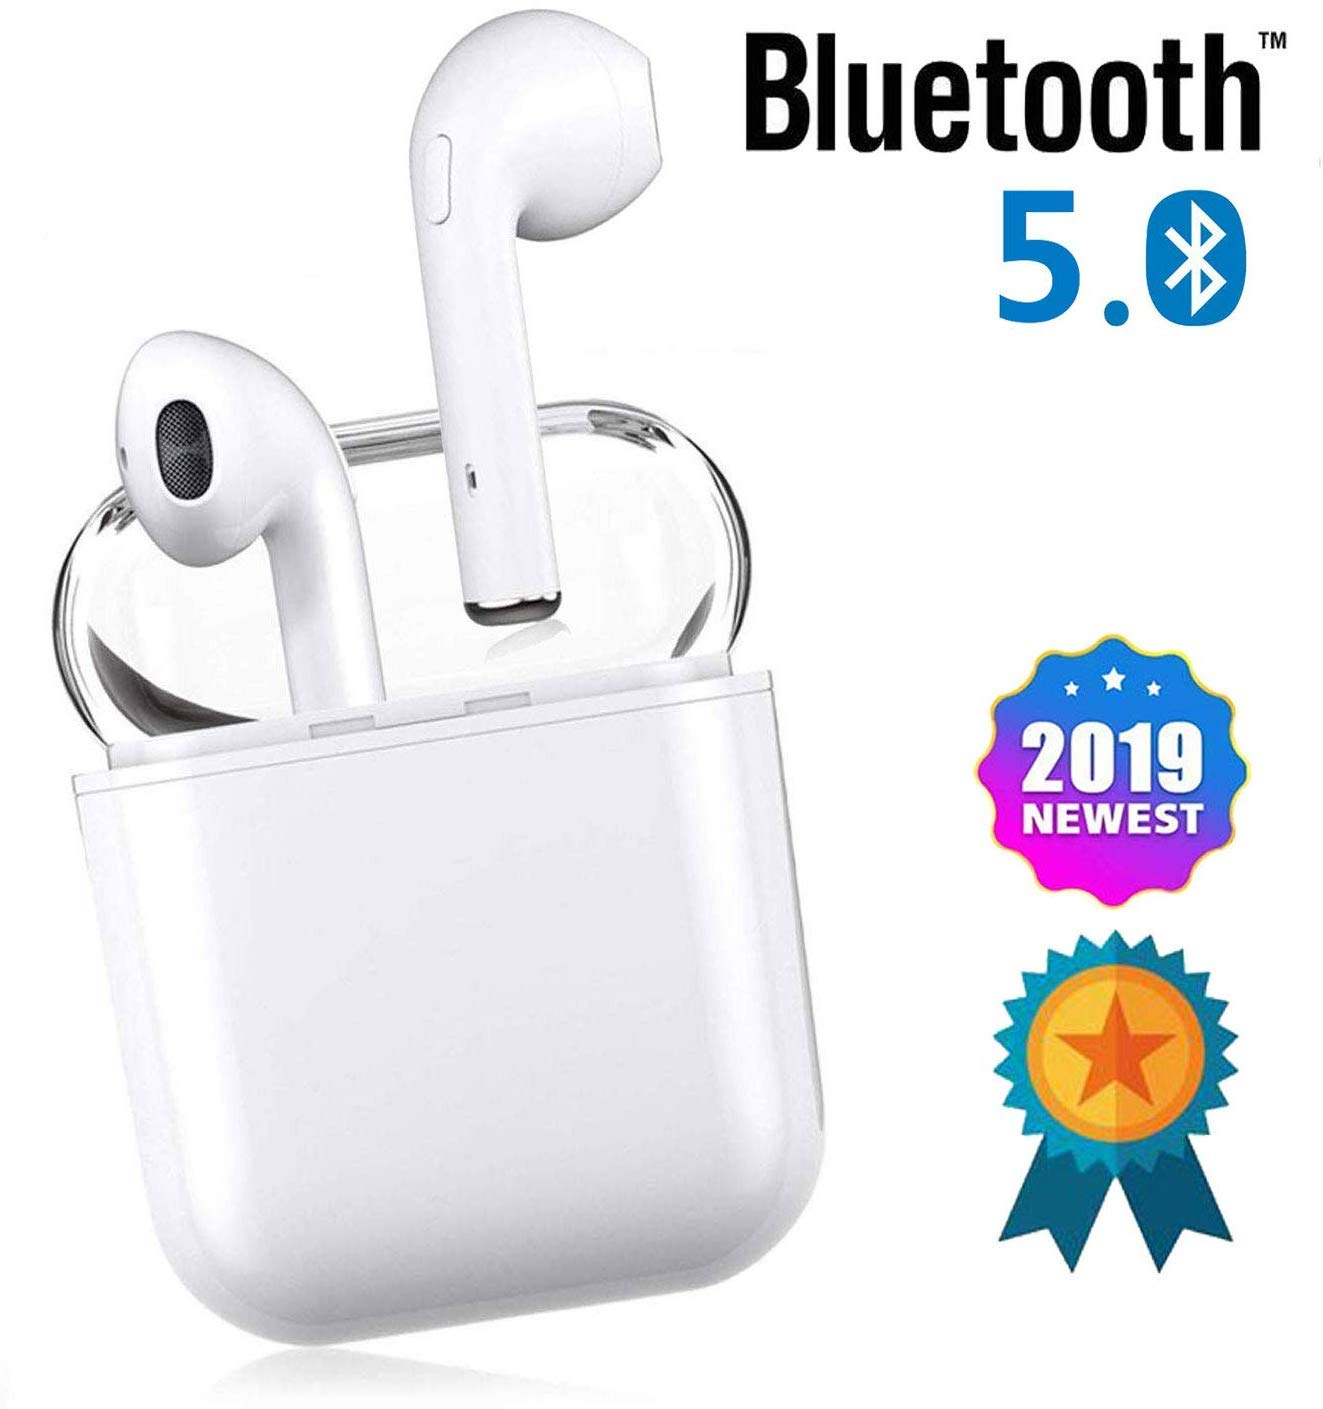 DHADH-1 Bluetooth Headphones 5.0, Wireless Earbuds with Graphene-Enhanced Driver s, 3D Stereo Surround Sound, IPX5 binaural Call, Sports Headphones for iPhone Airpod Airpods Android Apple